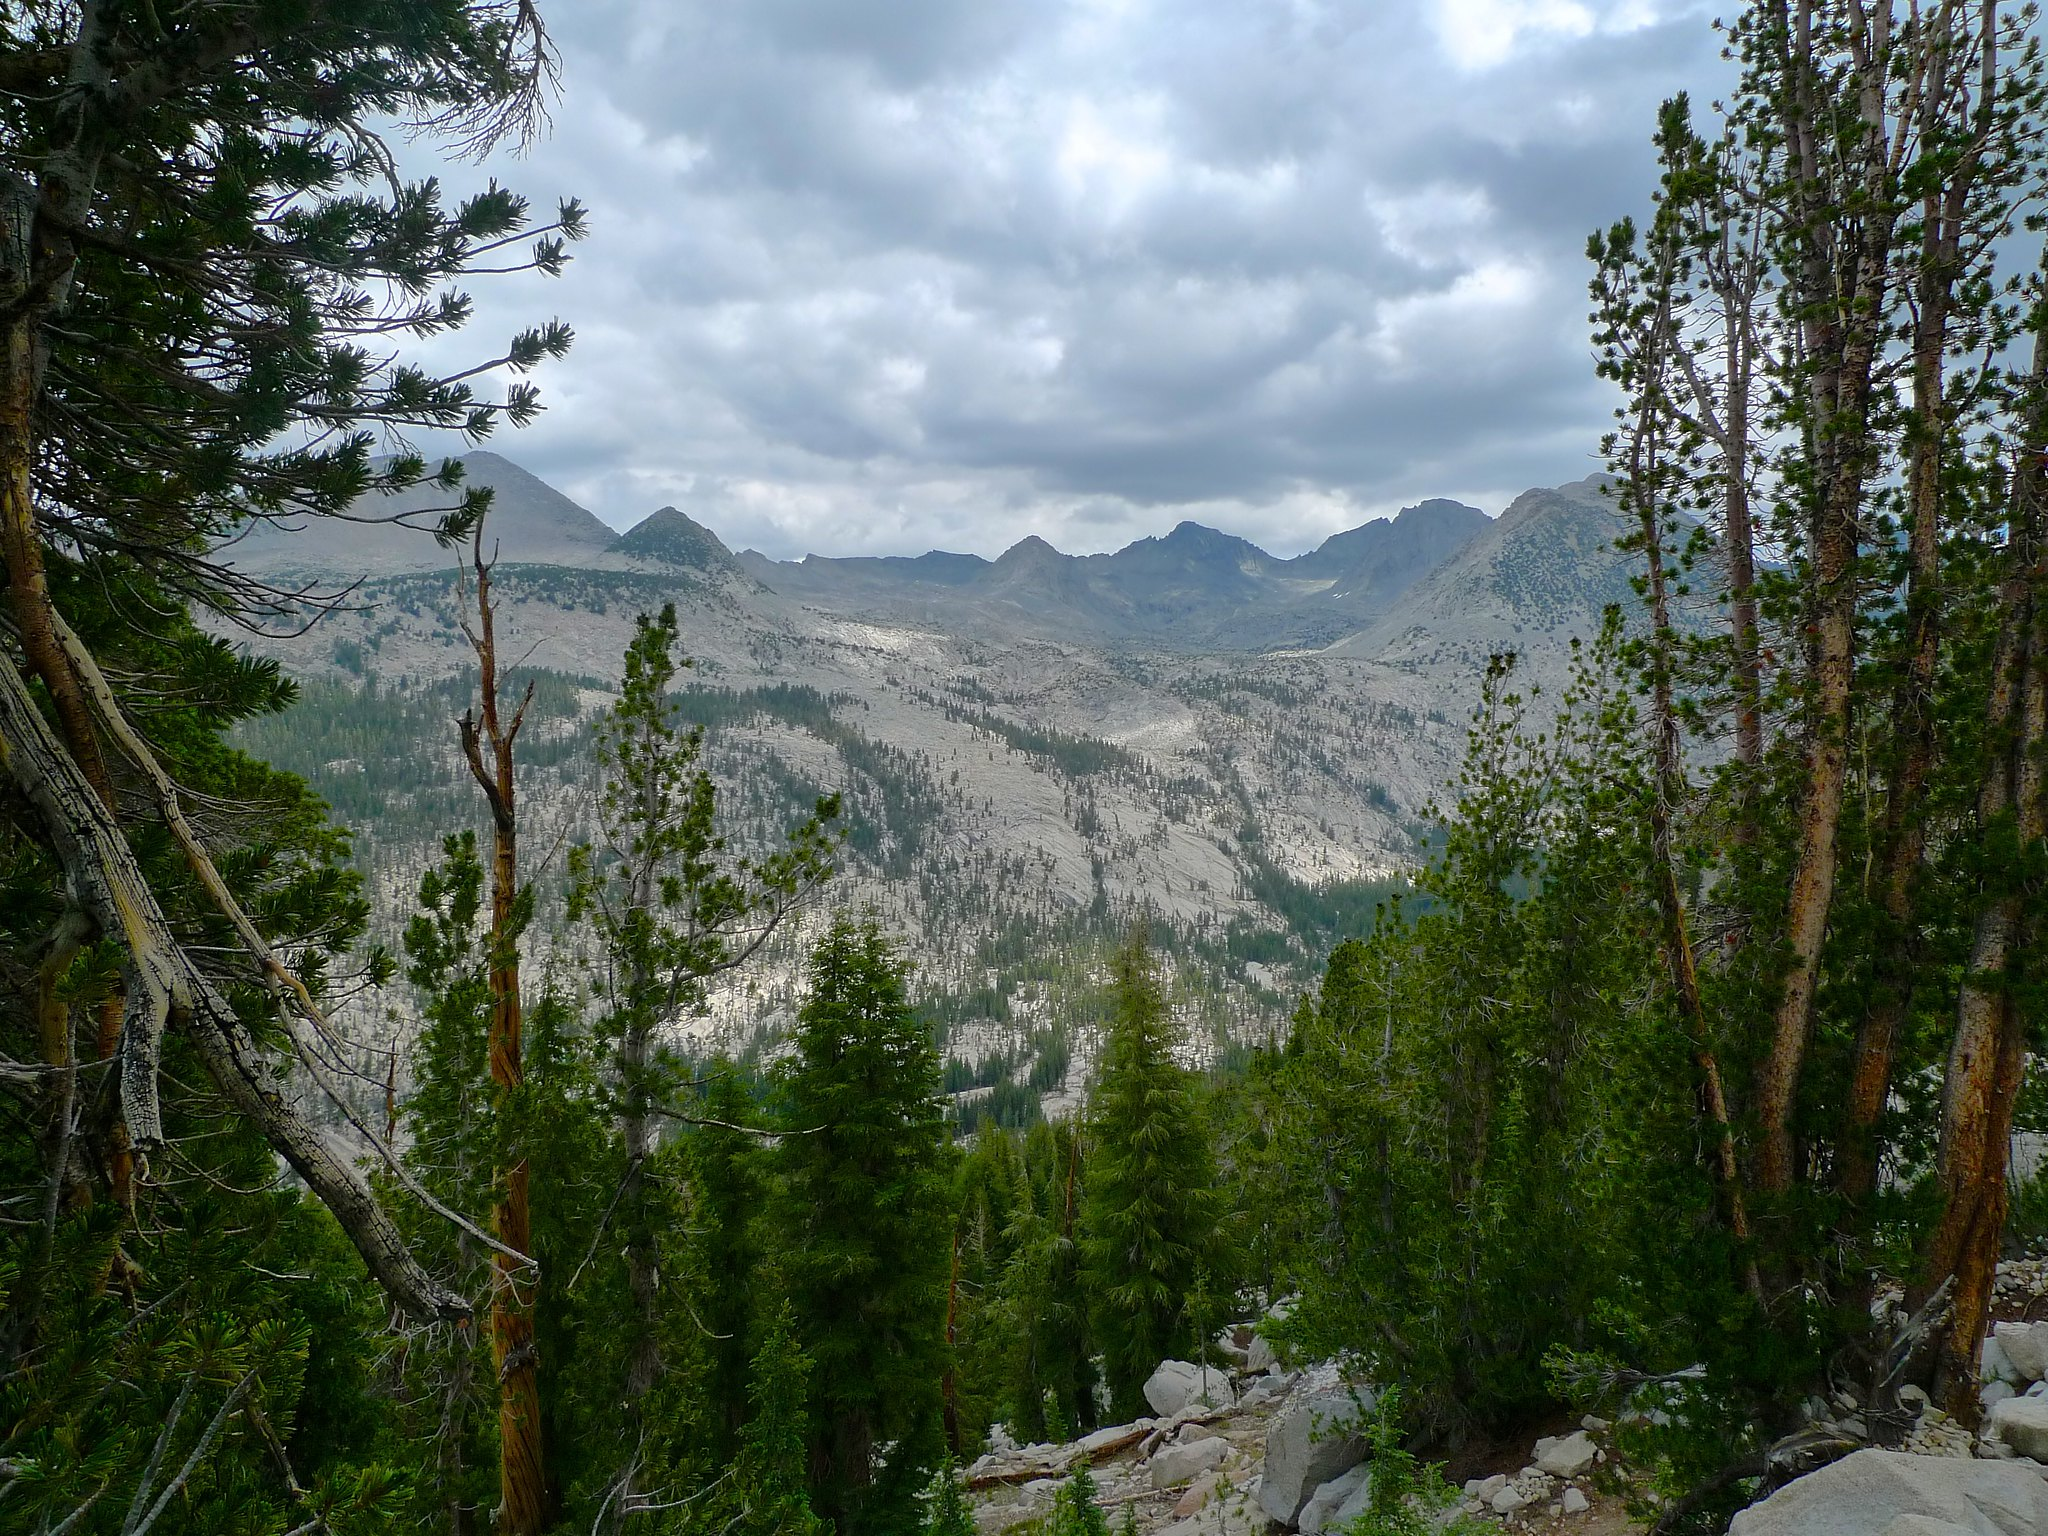 Looking north across the canyon of the Lyell Fork of the Merced